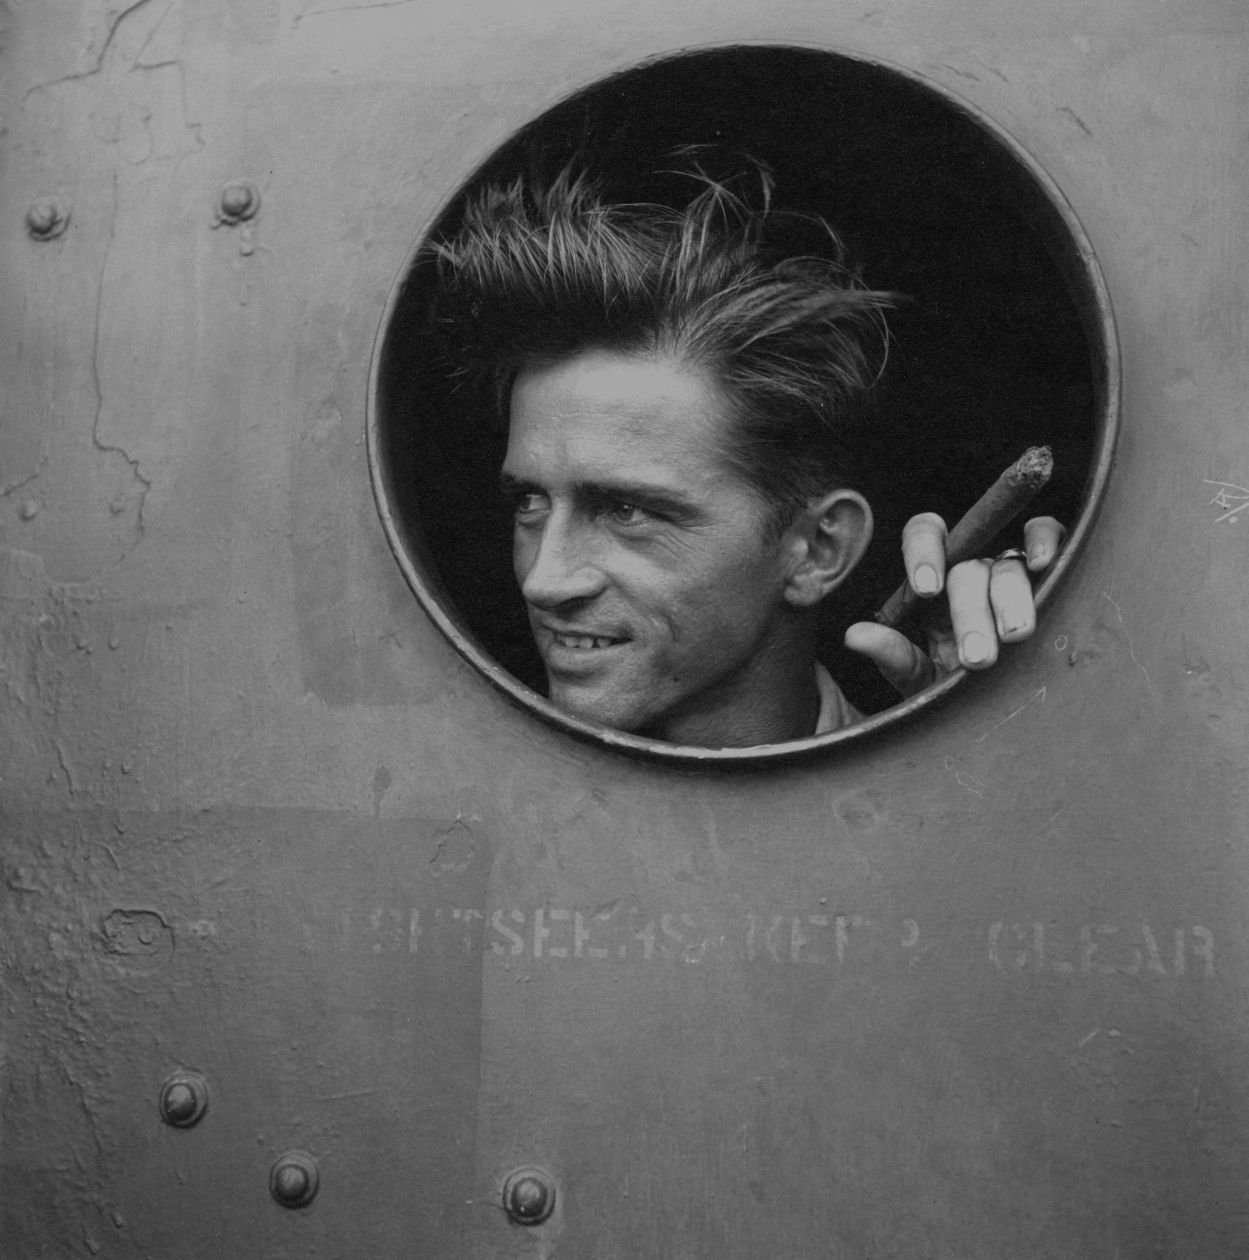 Pacific Theater, WWII (sailor smoking and peeking out of window) (1942-45) by Wayne Miller